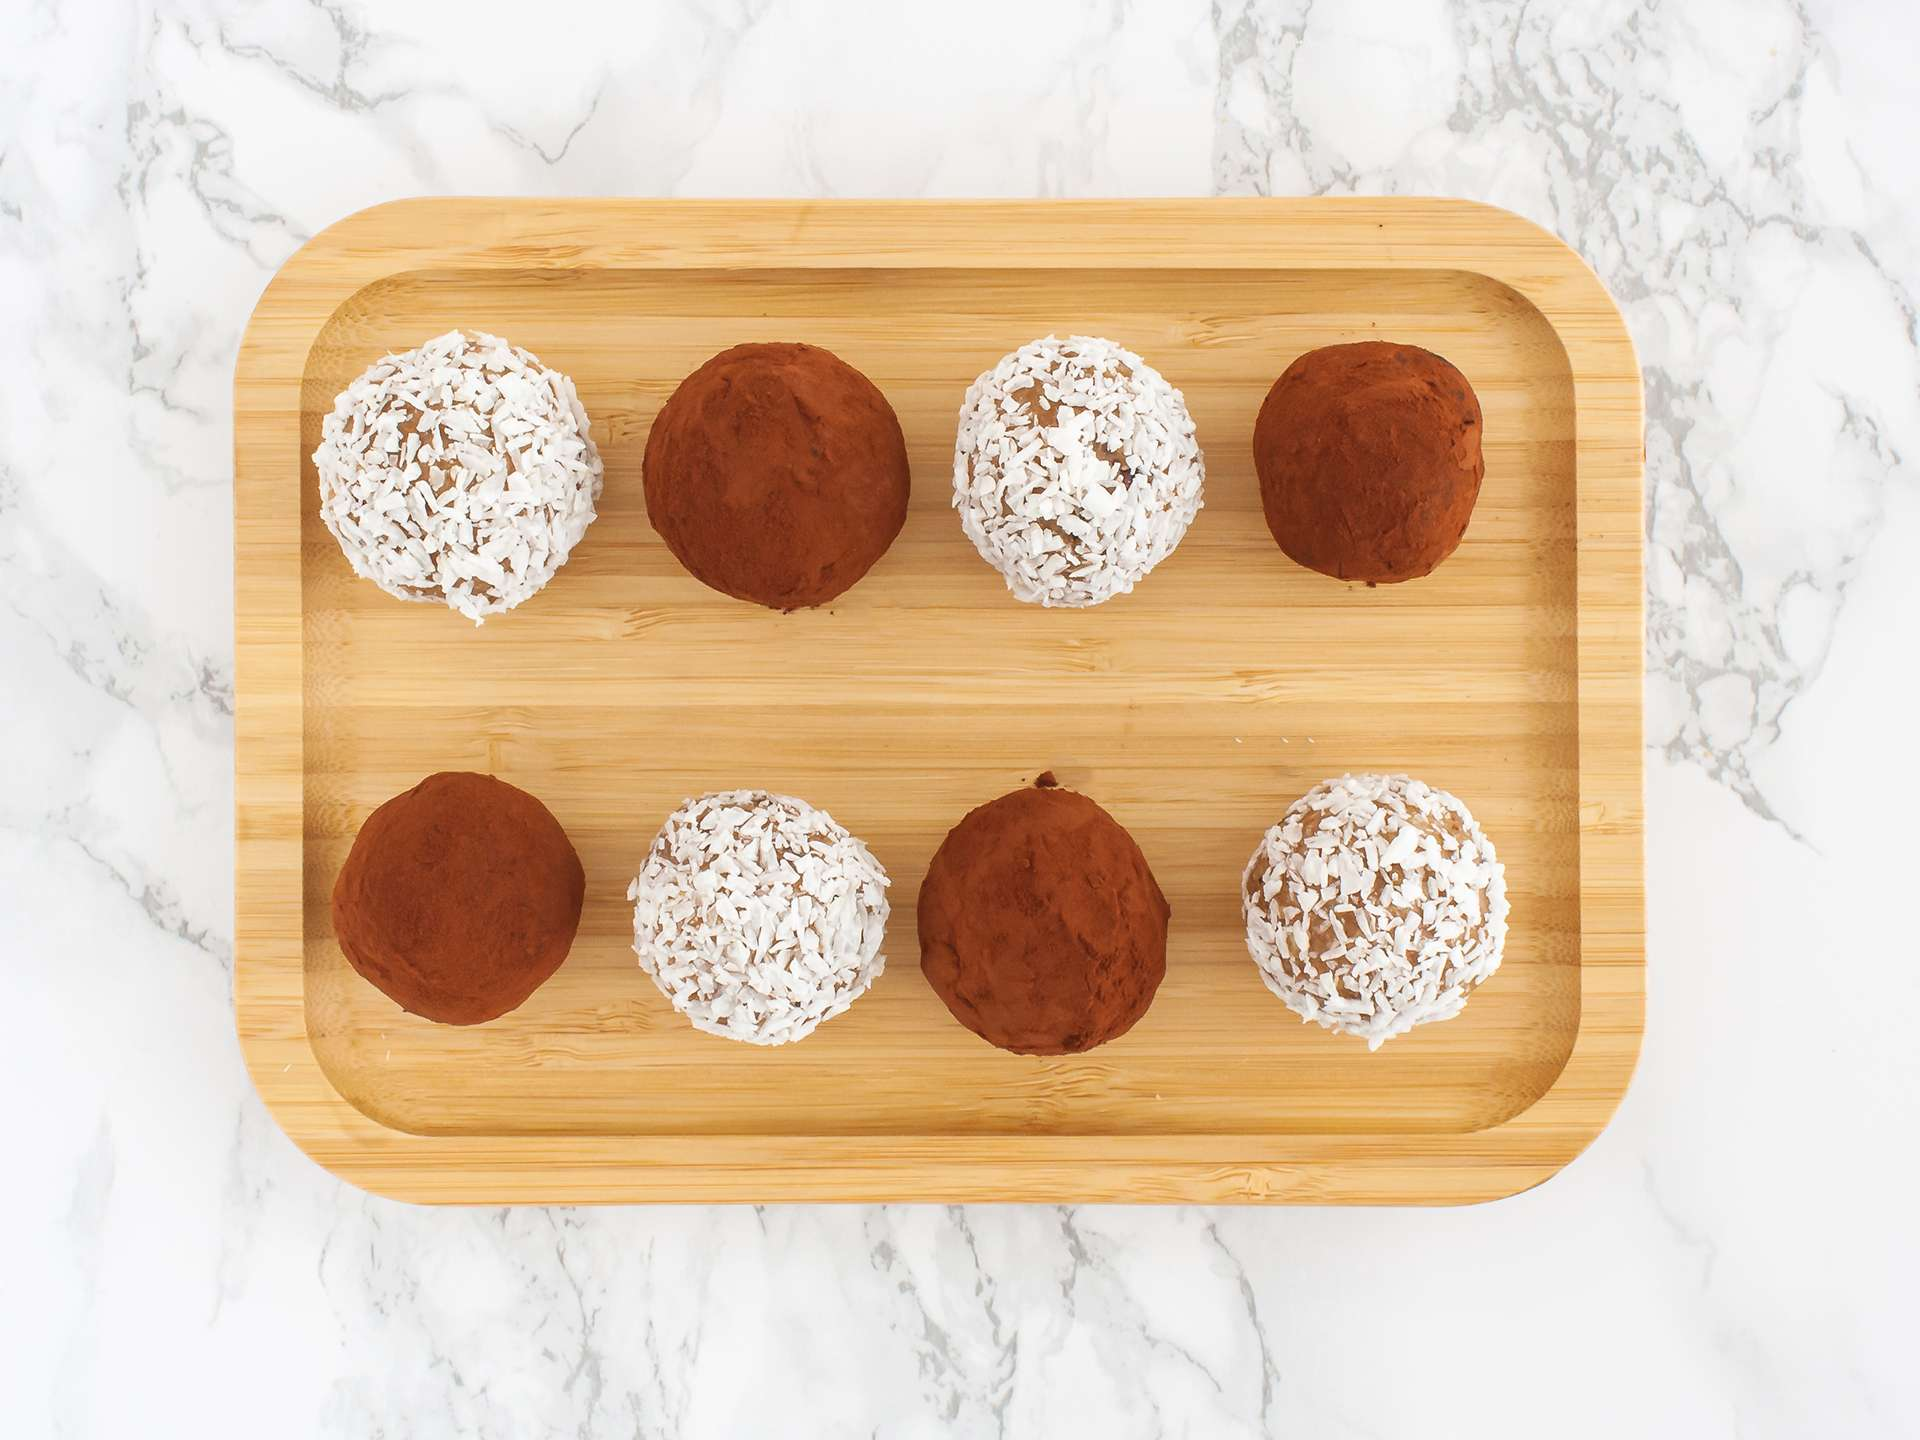 Step 4.1 of Chocolate and Coconut Cashew Truffles Recipe